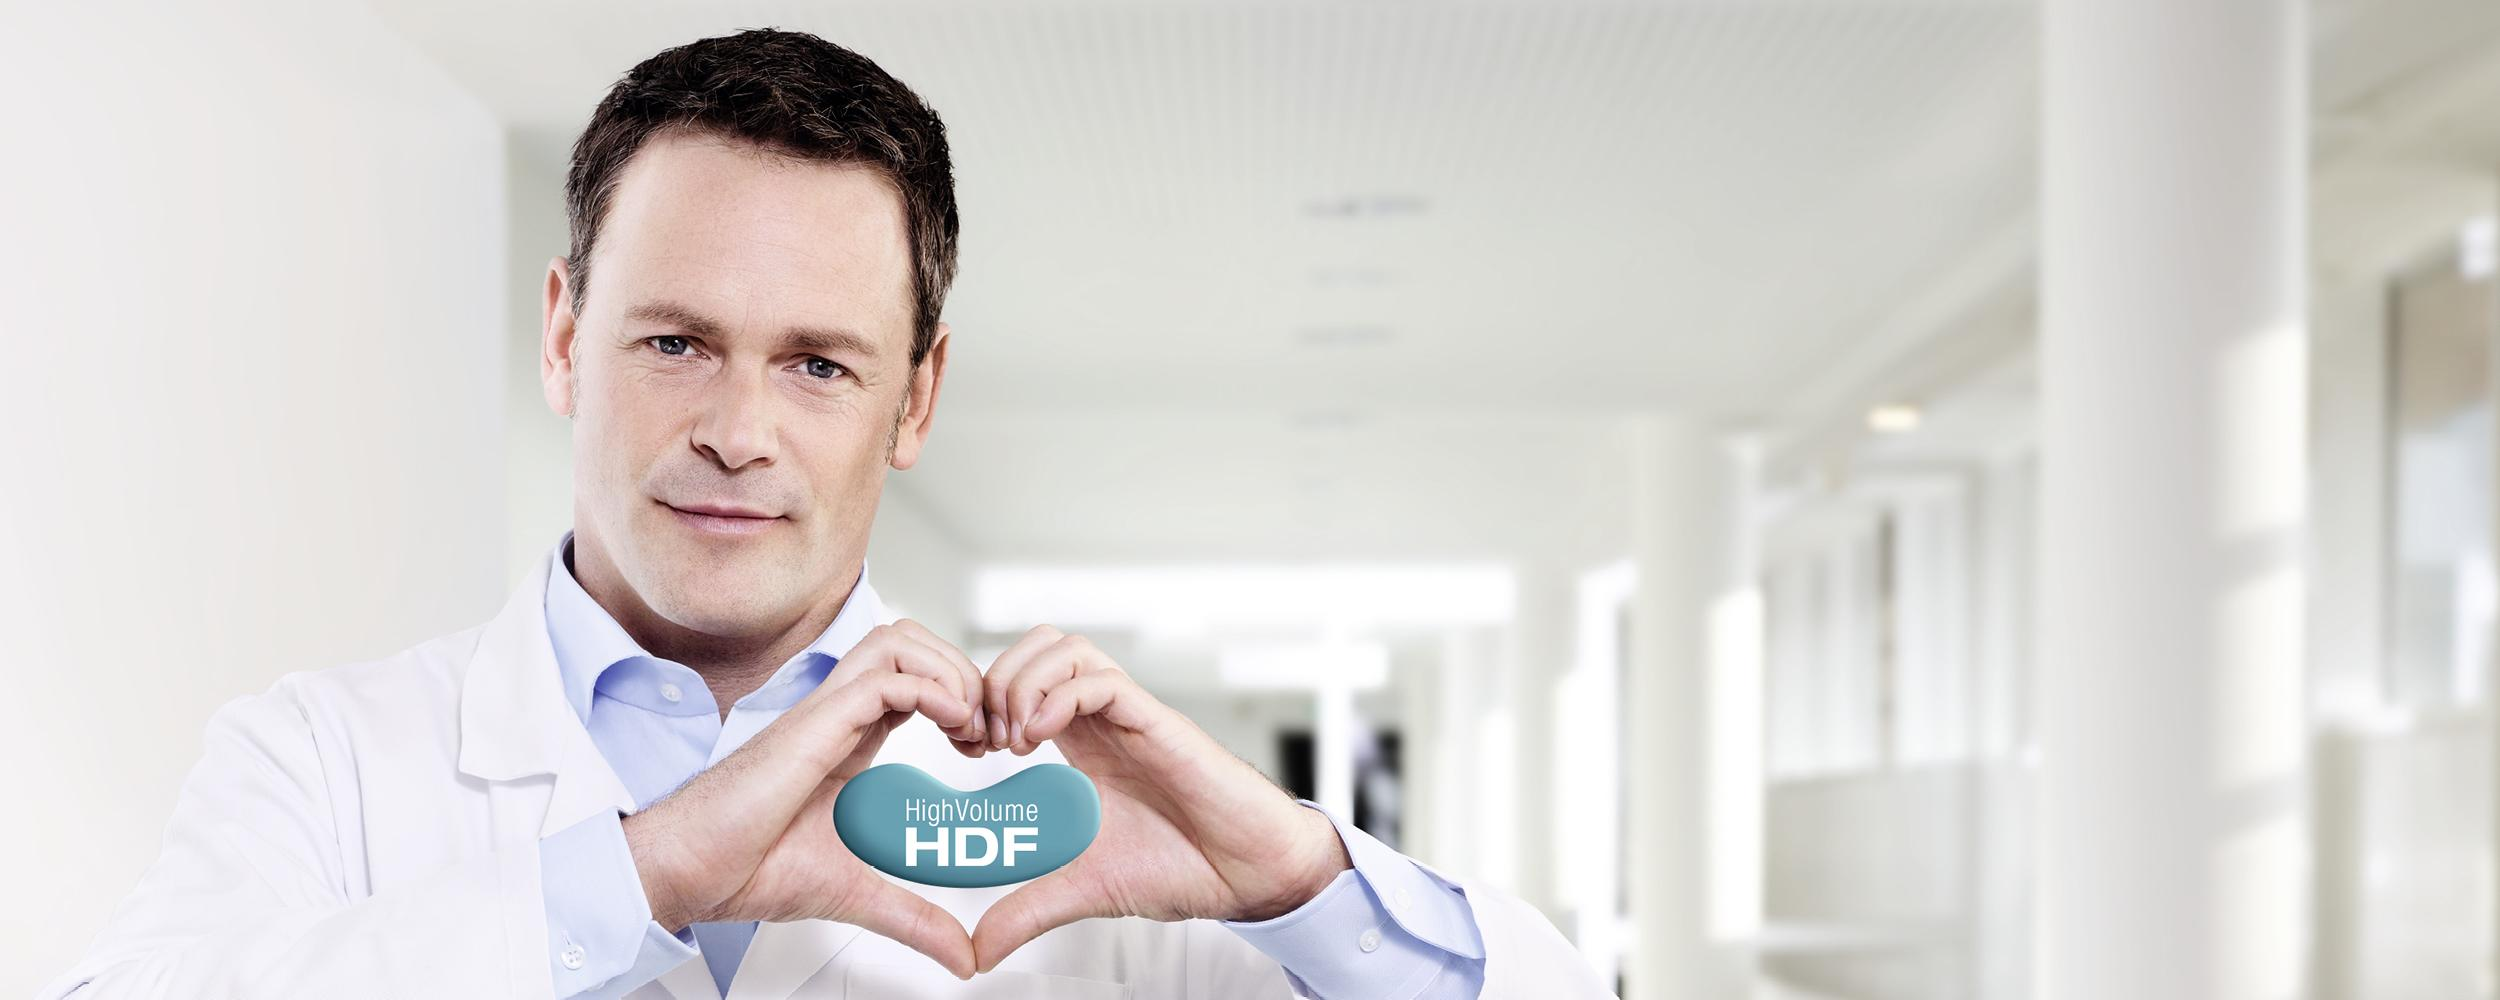 HighVolumeHDF® de Fresenius Medical Care